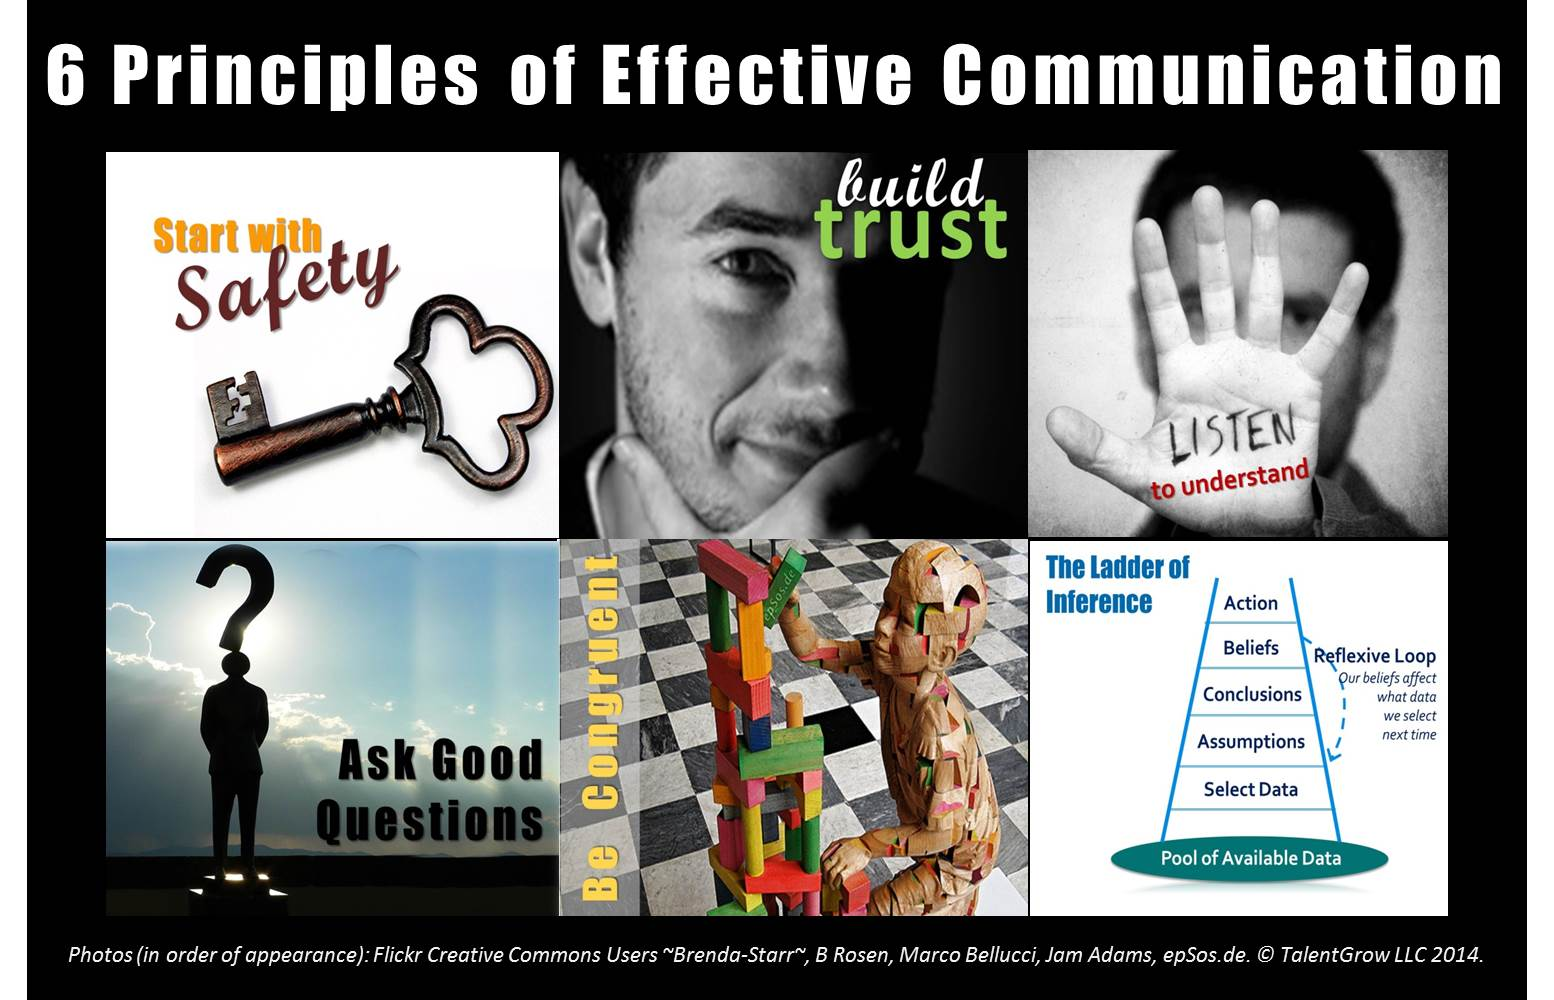 6 principles of effective communication www.talentgrow.com.jpg